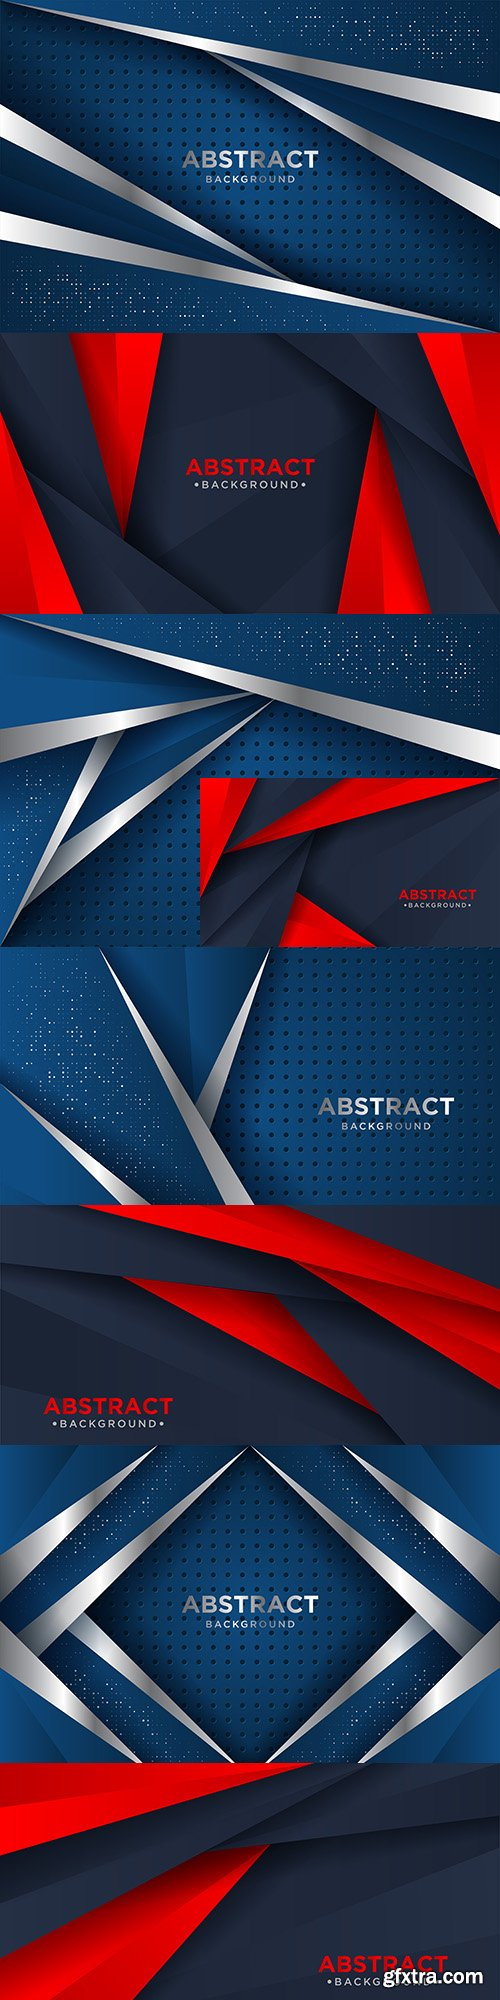 Abstract darkly blue background and design decorative element